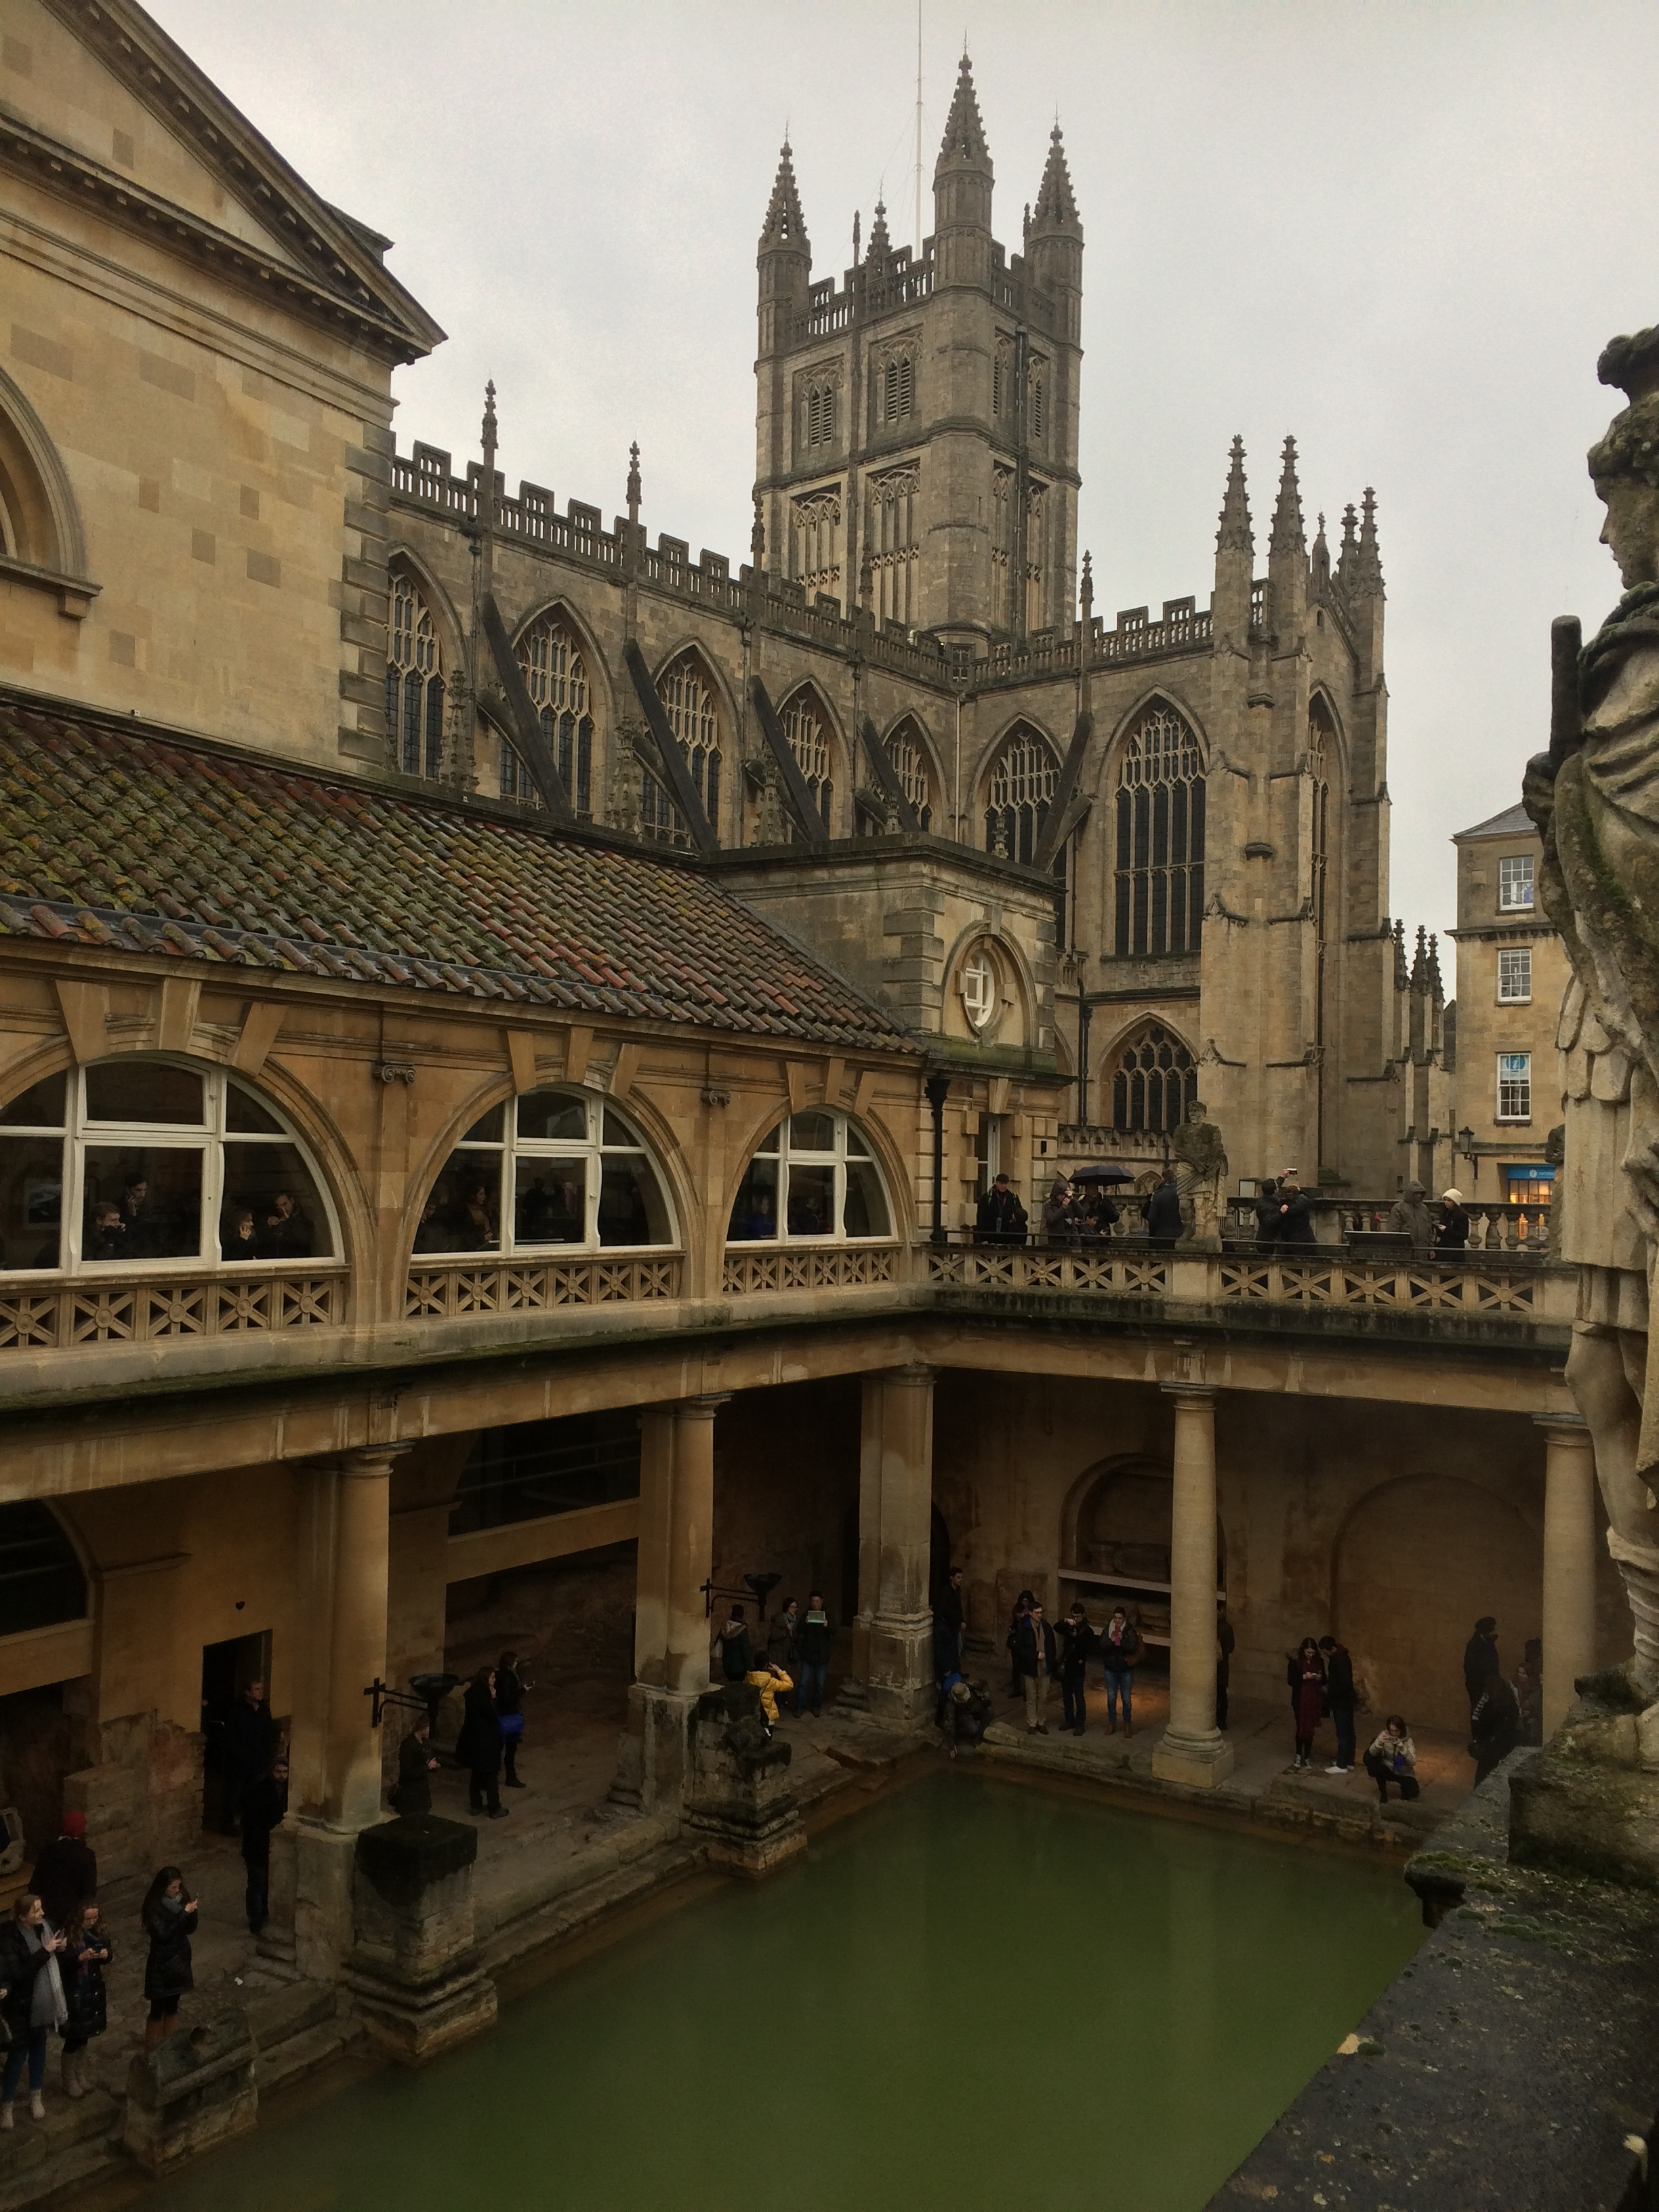 The Roman Baths, Bath, UK - Fulbright Study Abroad and Travel